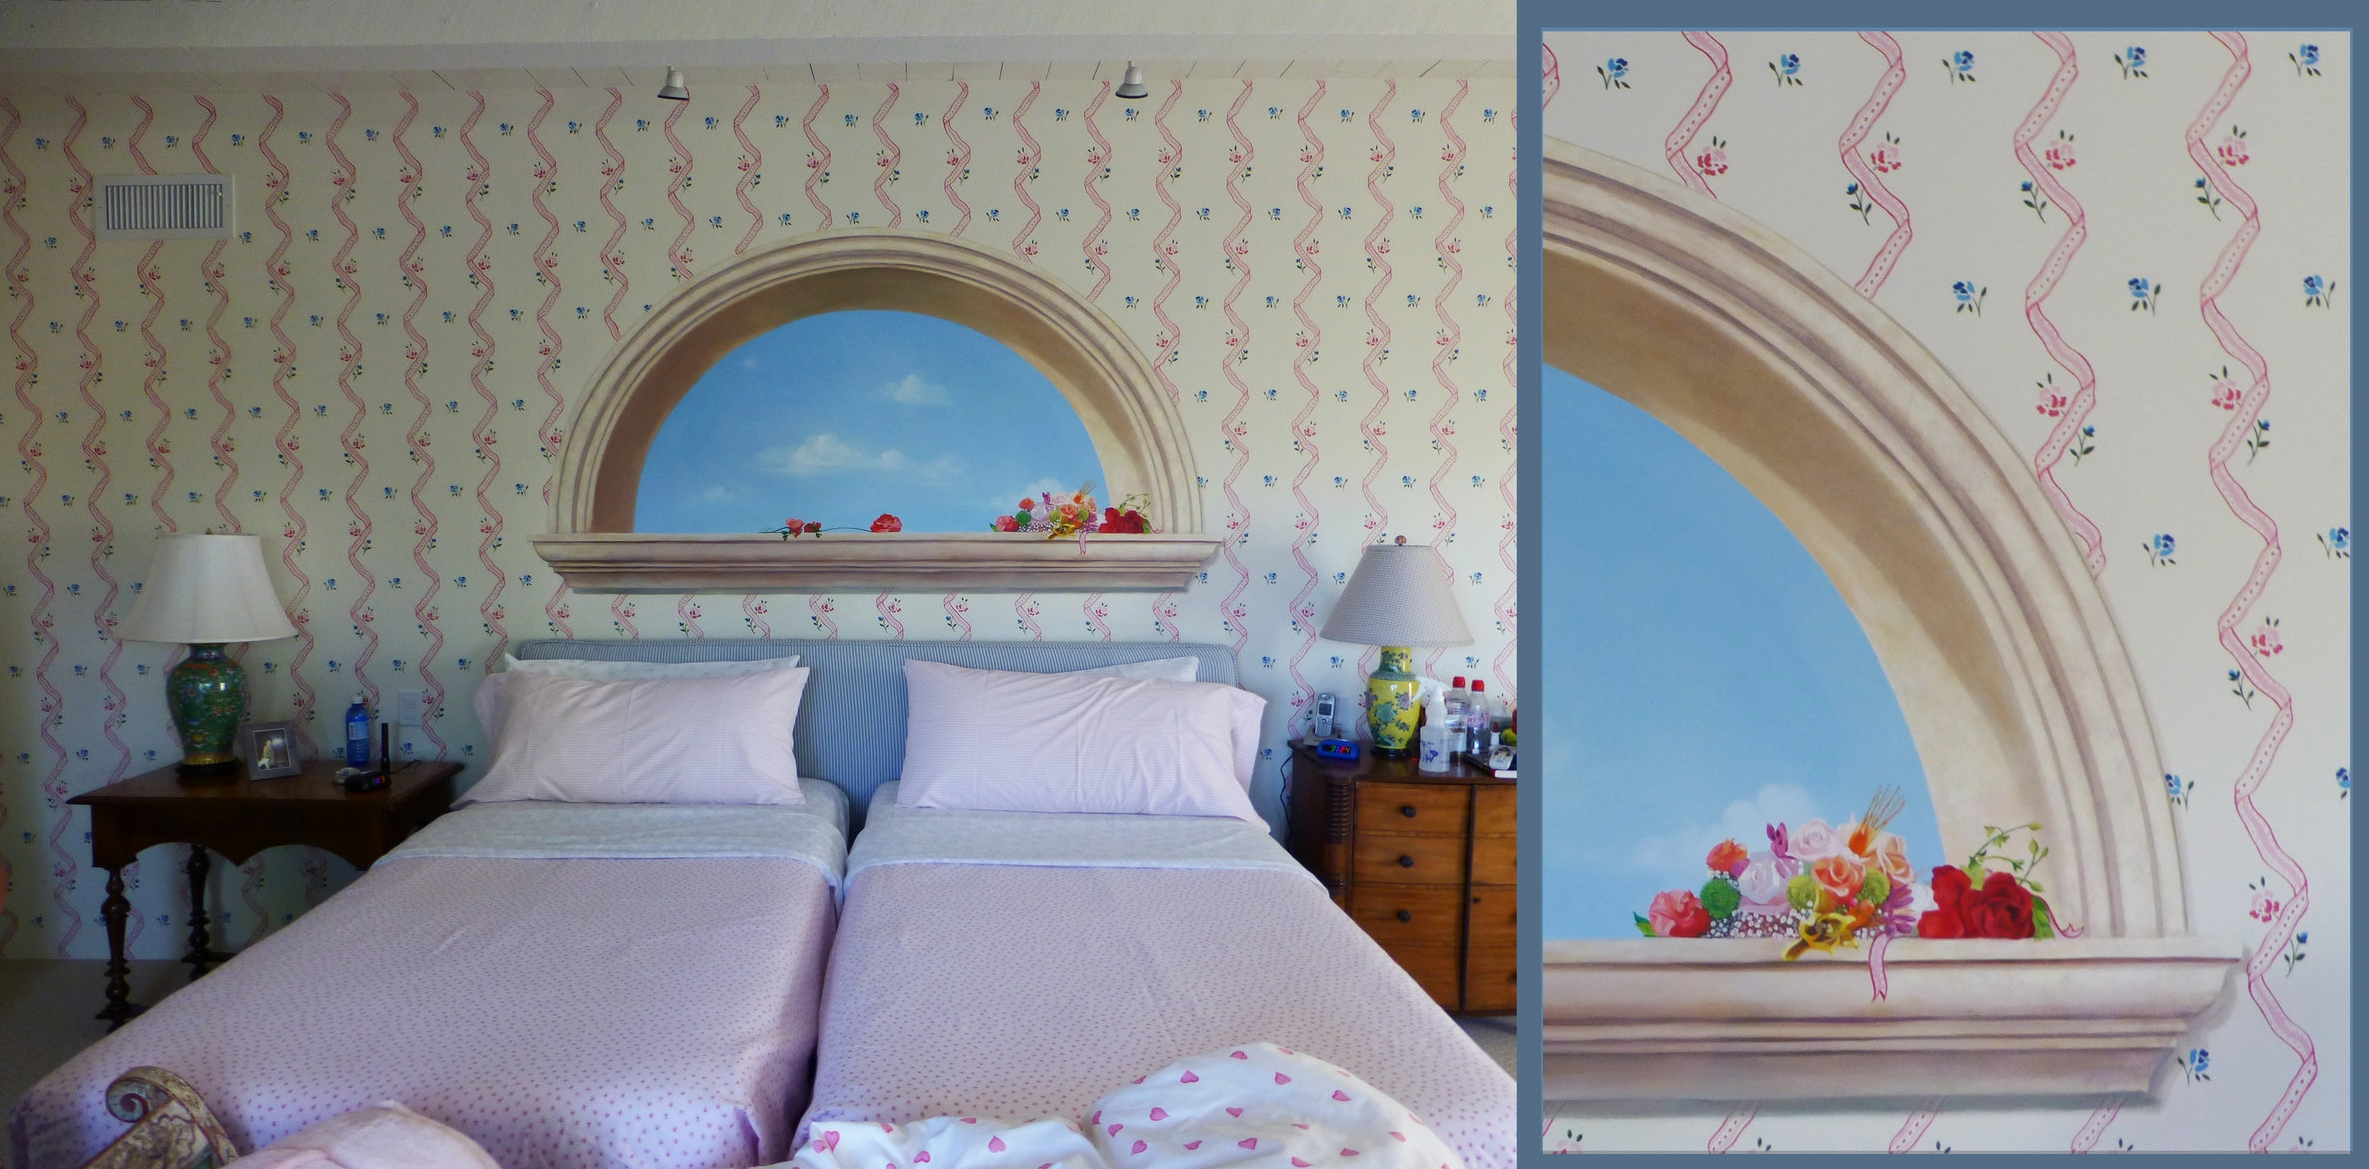 Hand-painted ribbon throughout room and mural